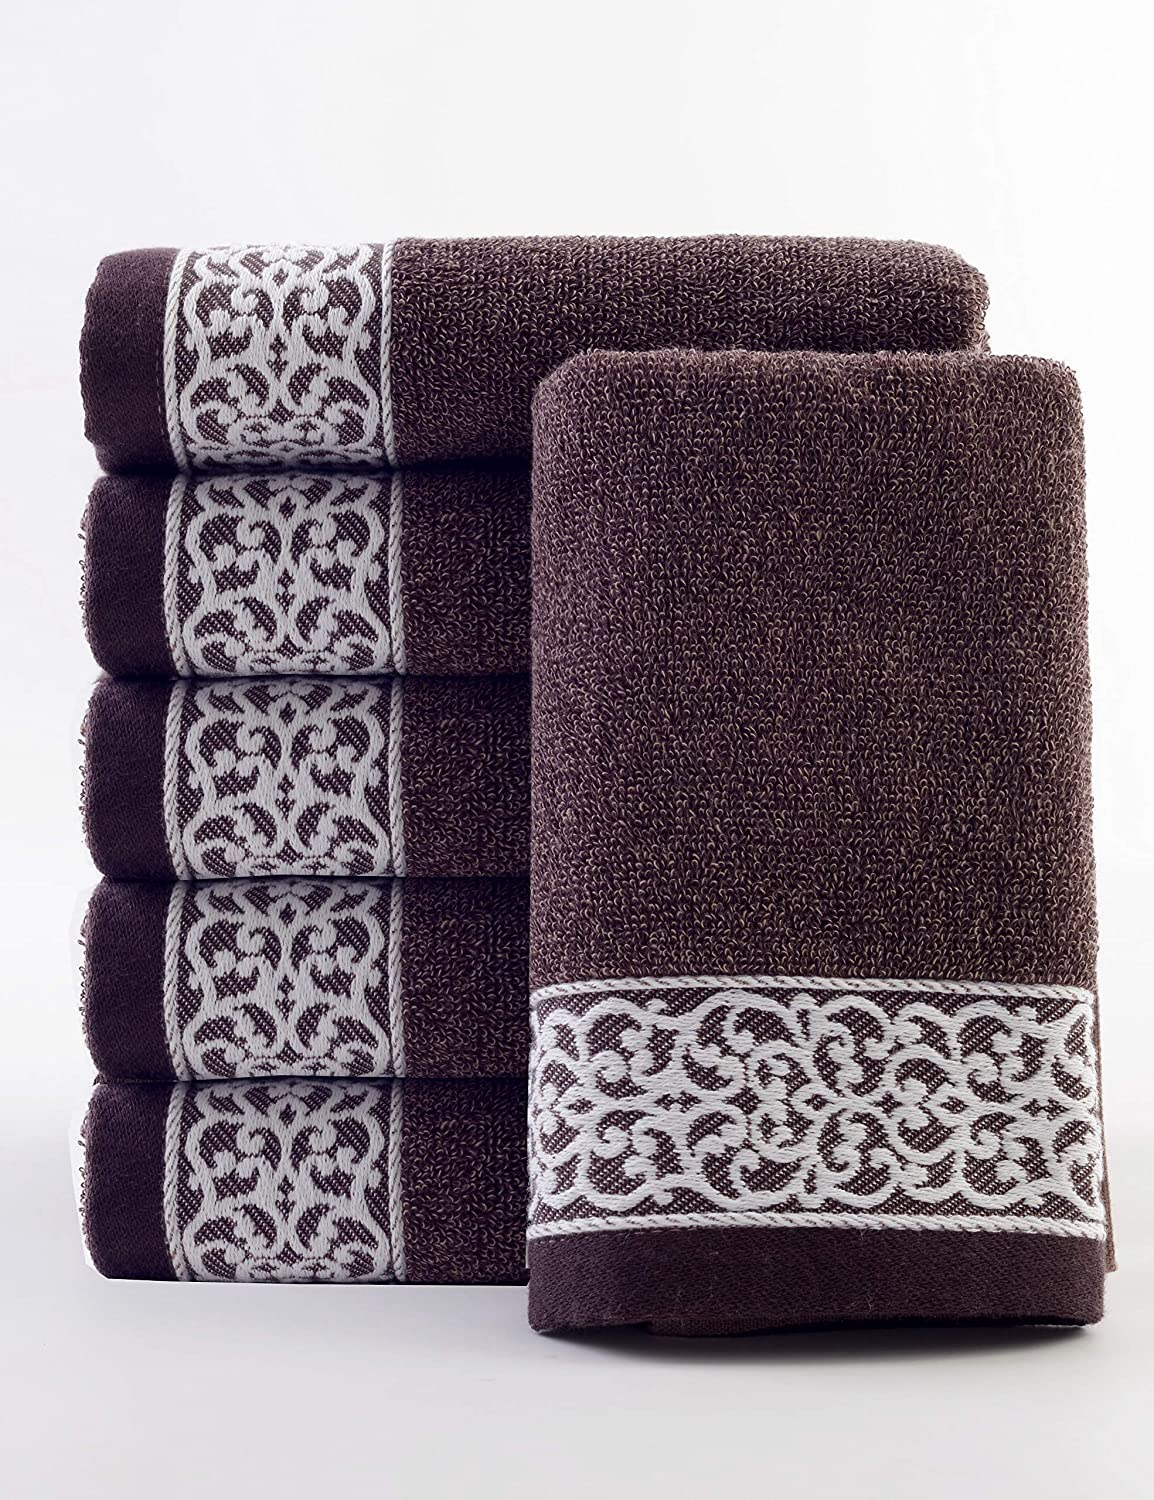 lvse Luxury Decorative European Hand Towel(1-Piece Packed),100% Organic  Cotton 392GSM,Fade Resistant,Soft and absorbently for Men and Women  Everyday